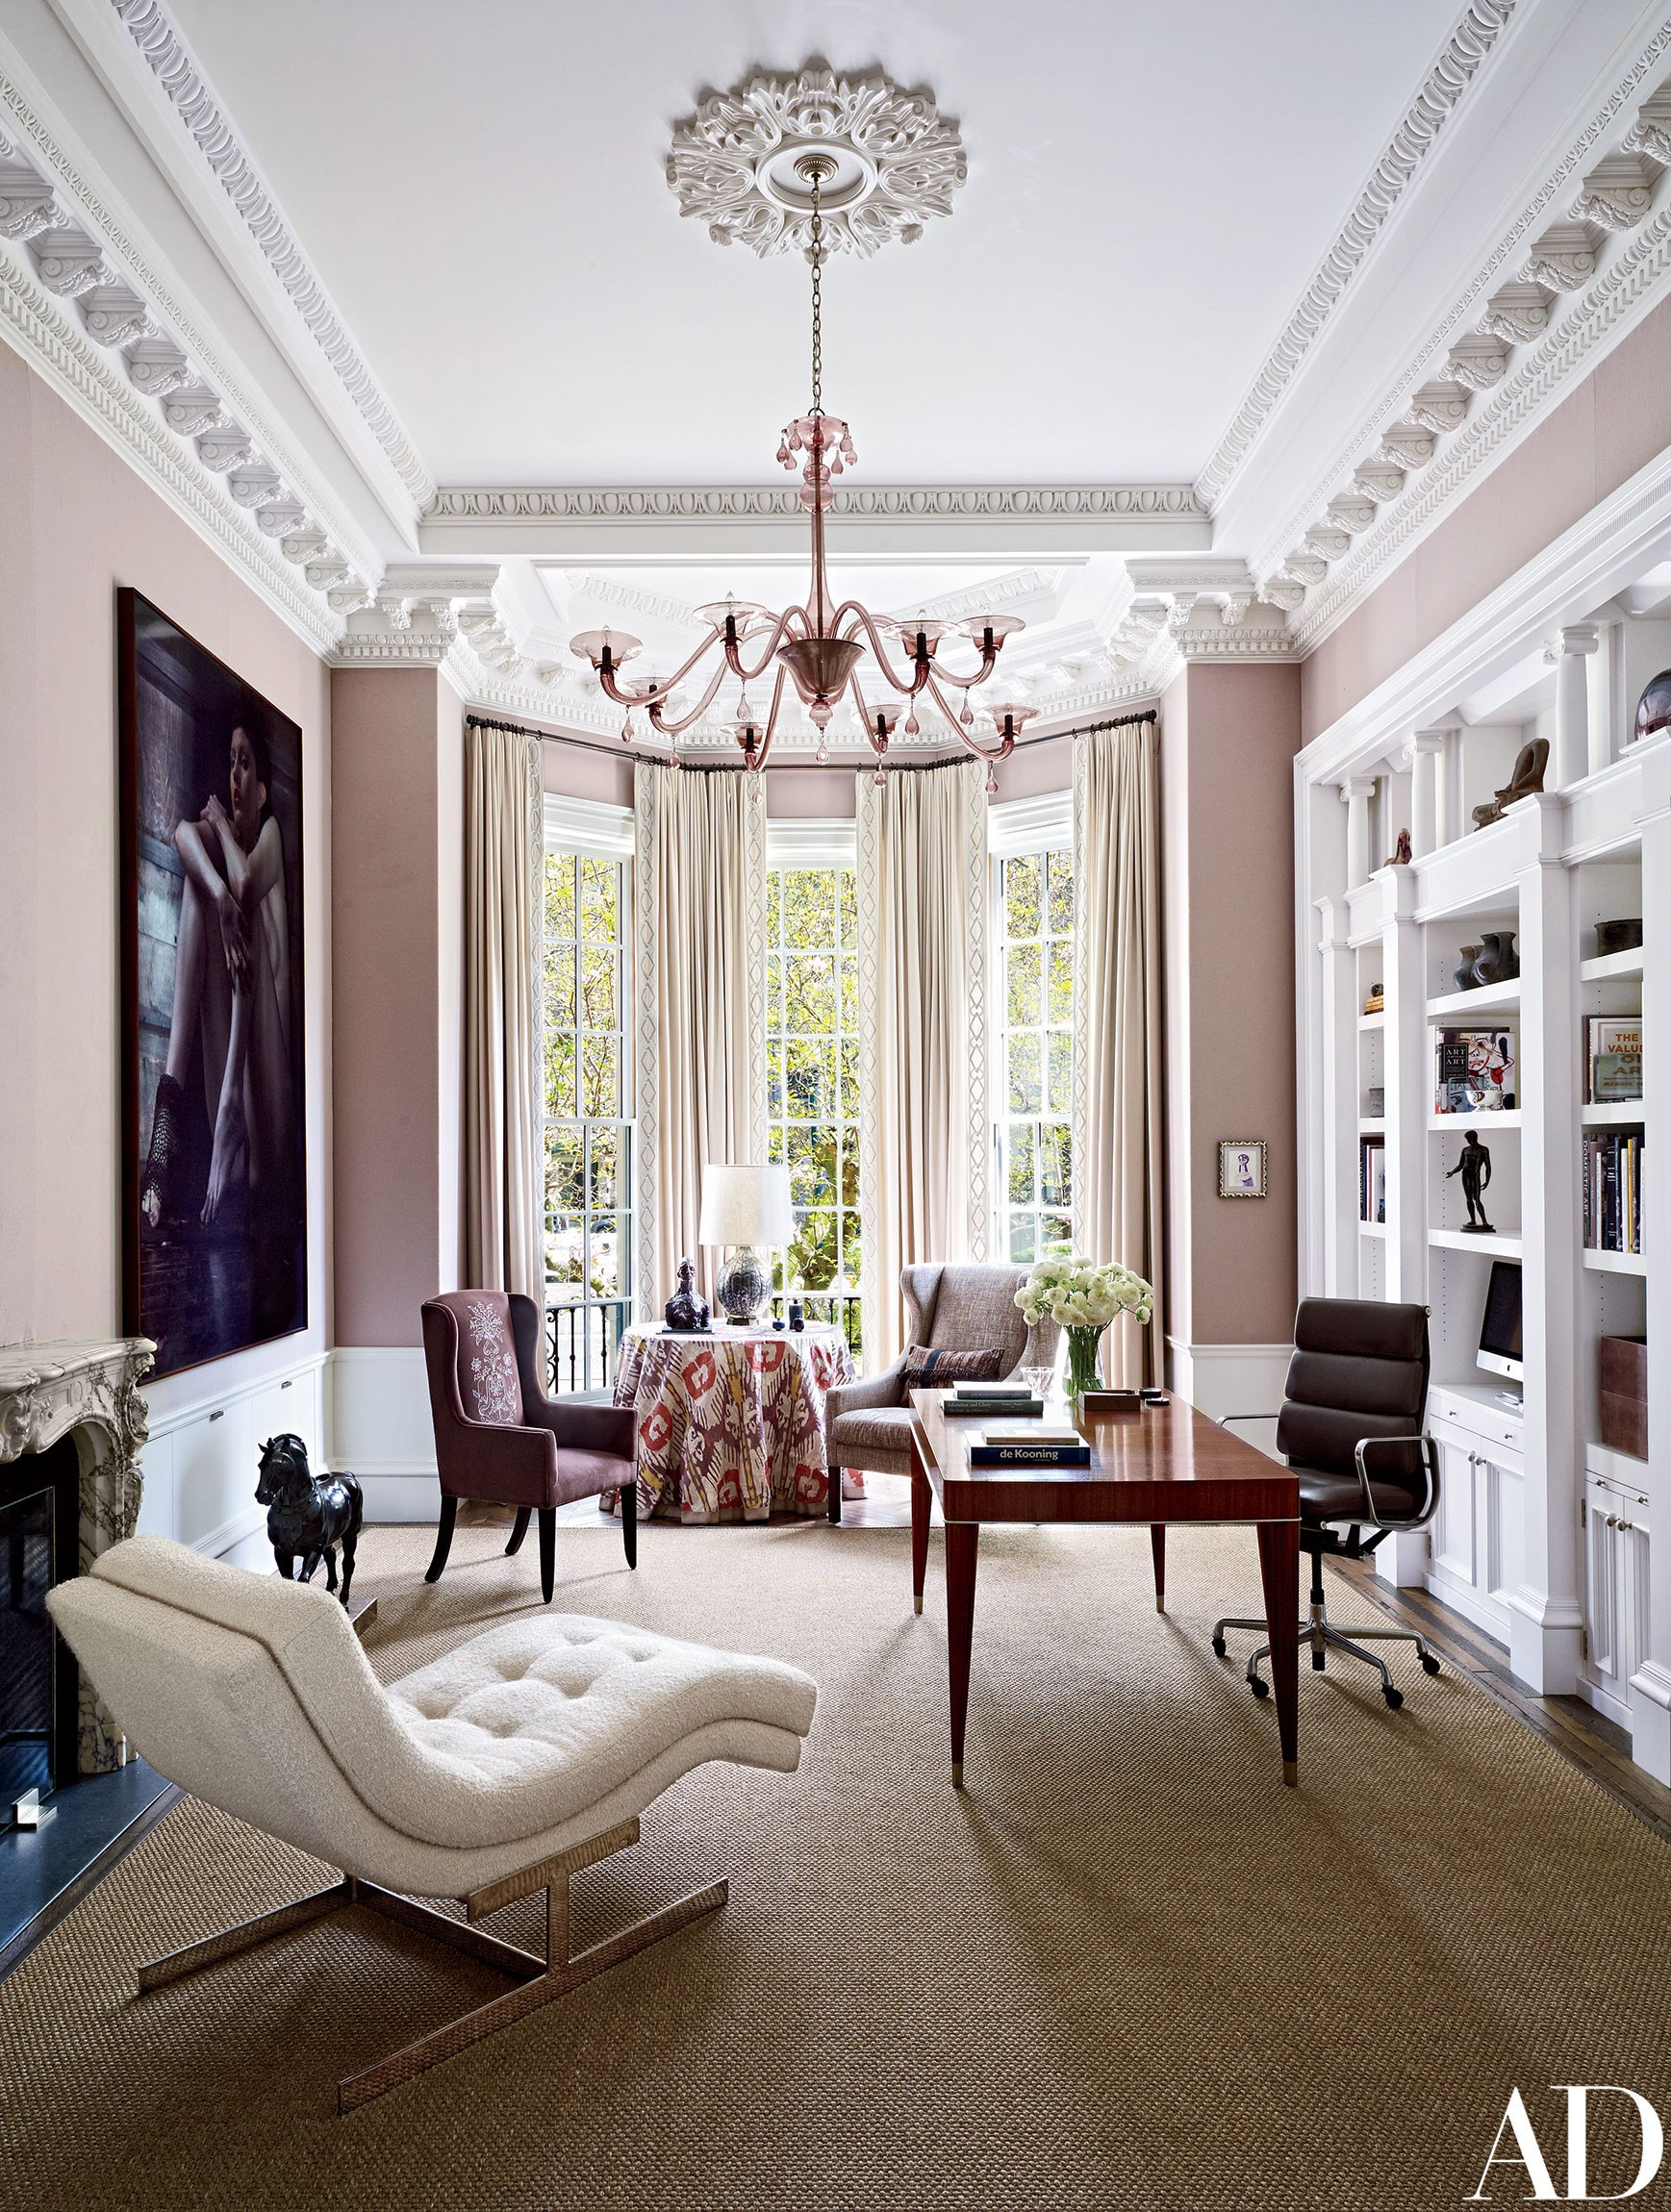 Pink is all the rage right now. See Graham and Brown's 2018 Color of the Year